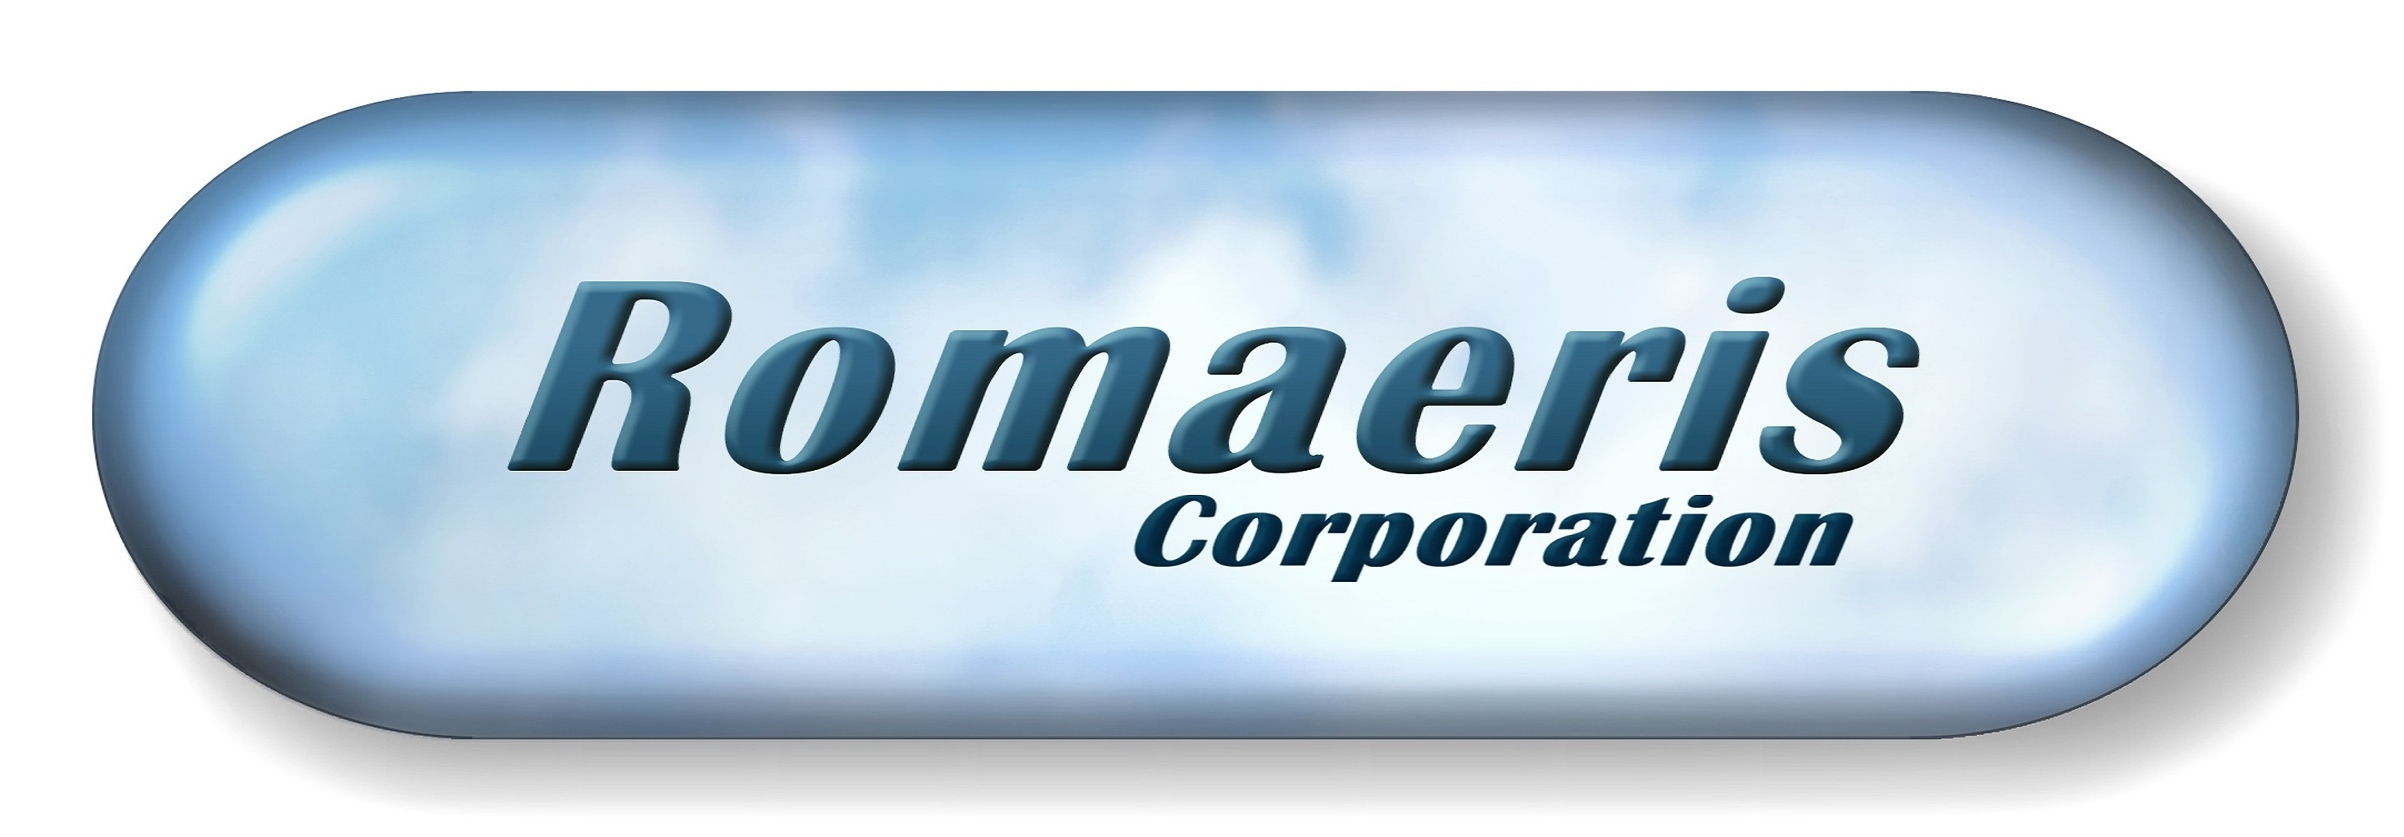 Romaeris Corporation